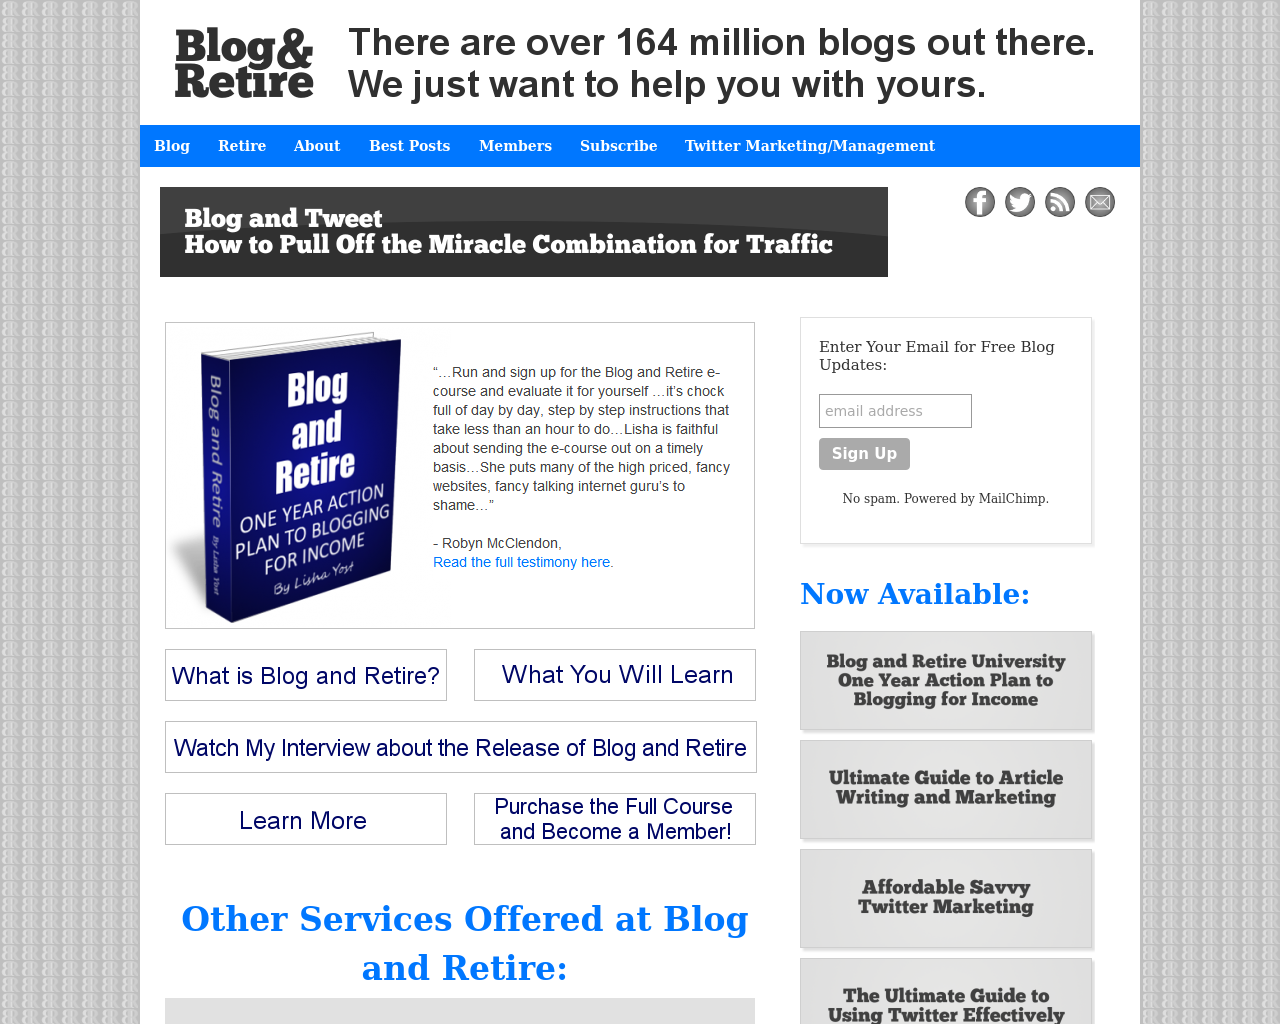 Blog-&-Retire-Advertising-Reviews-Pricing